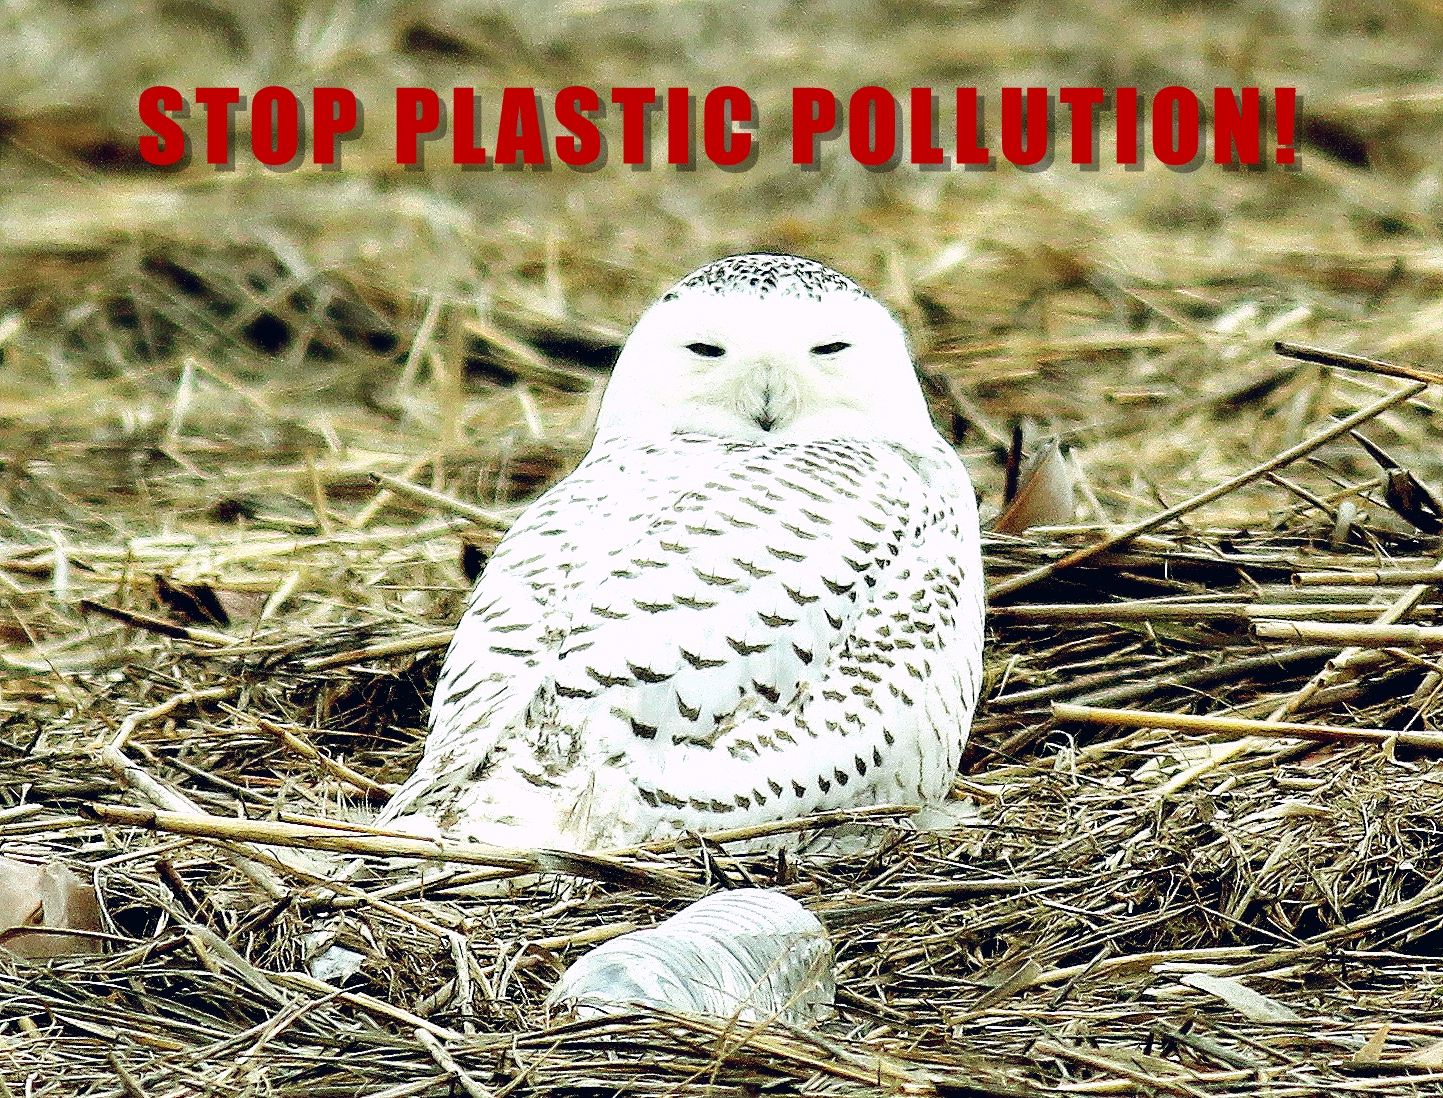 STOP PLASTIC POLLUTION! -